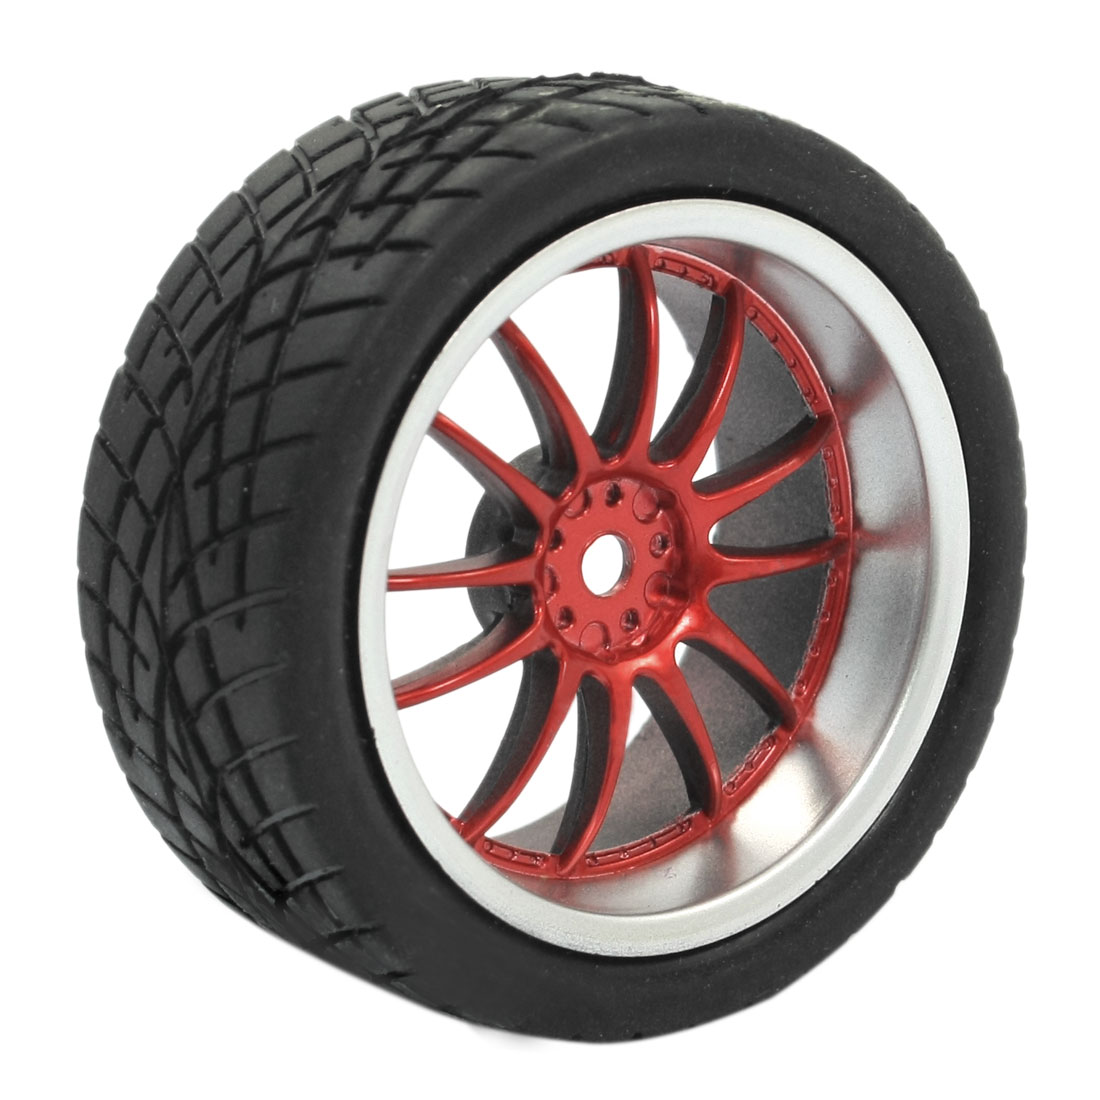 RC Model Smart Cars Off Road Red 10 Spoke 1:10 Plastic Tire Wheel